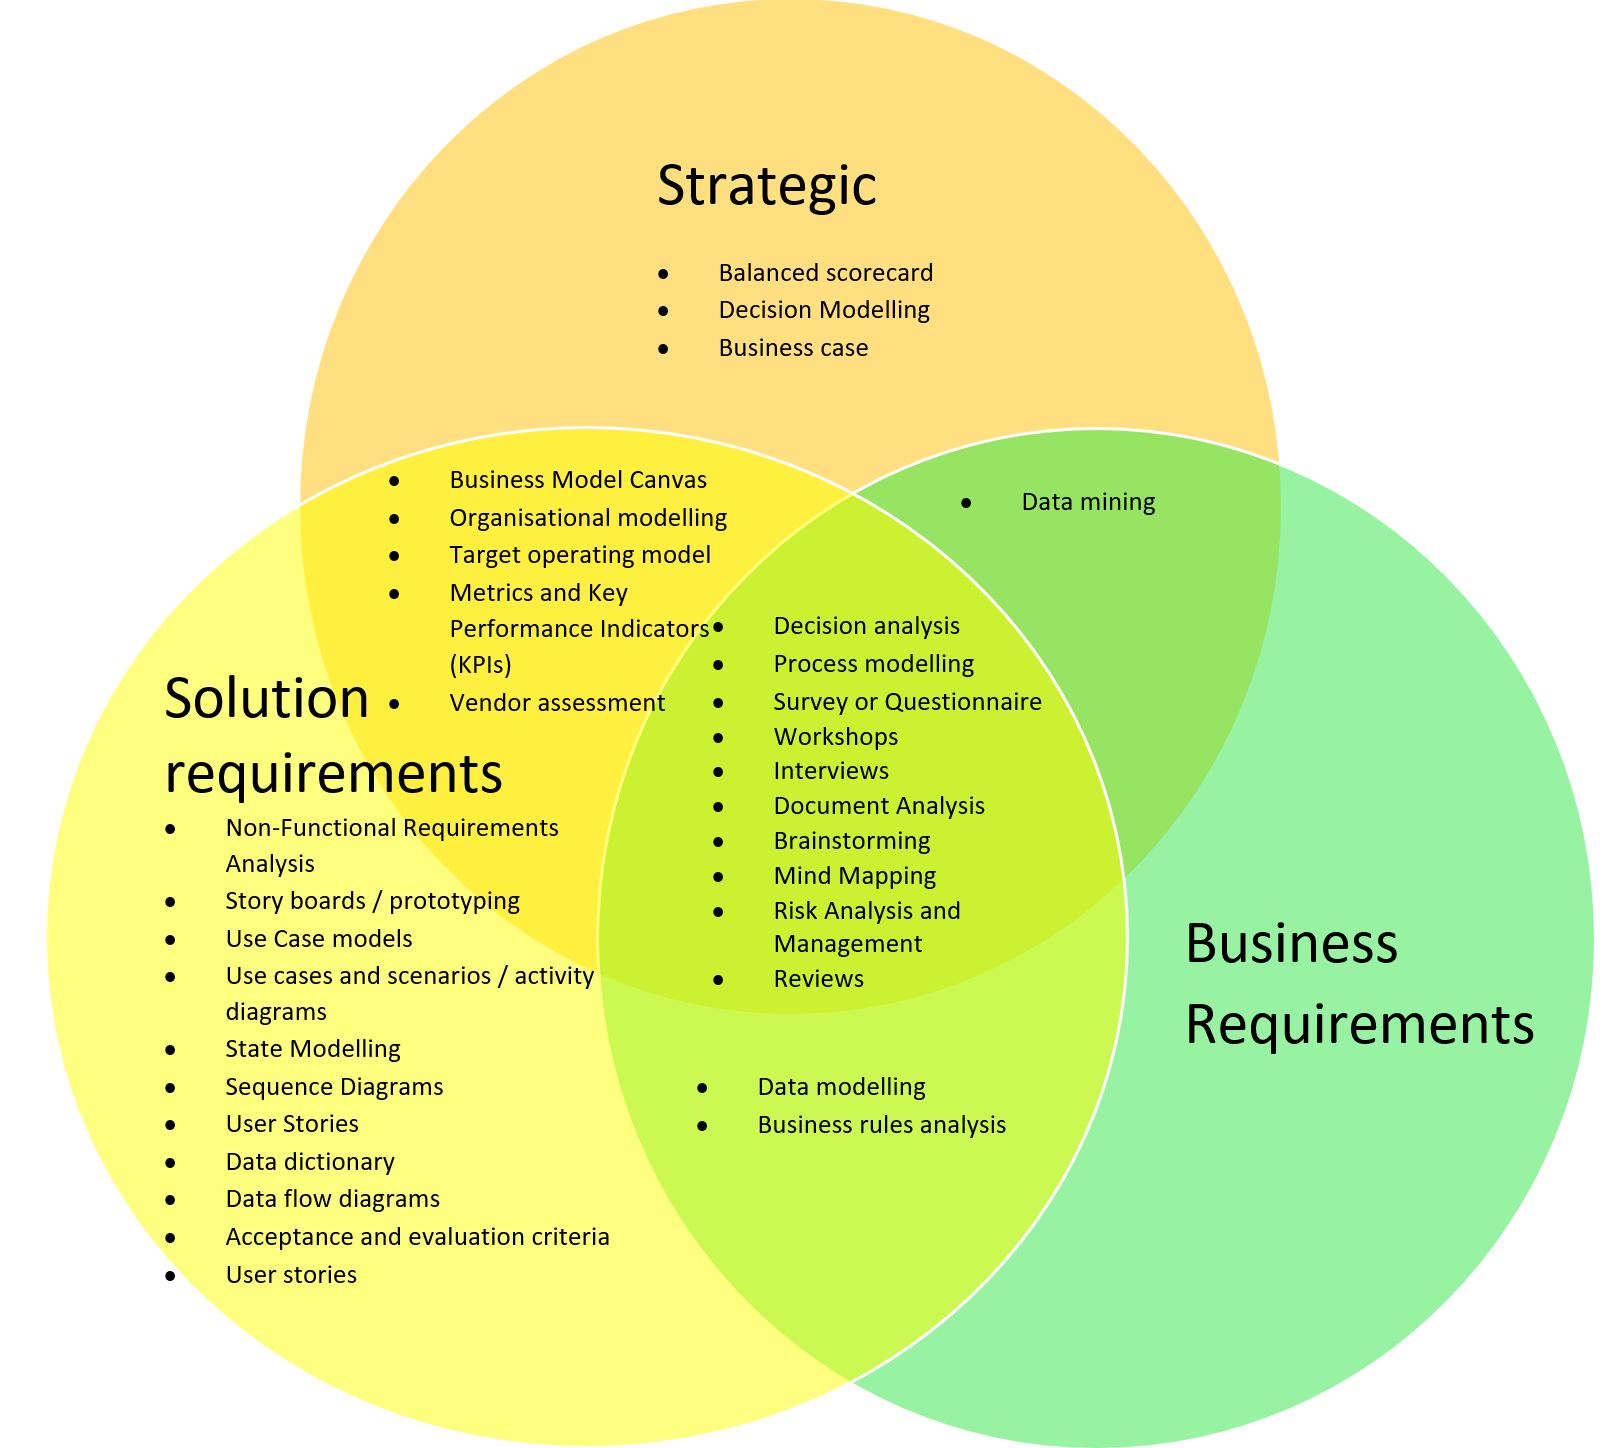 a business analysis techniques Best practices for business analyst 4 1 introduction 11 what is business analysis business analysis refers to the identification and analysis of business problems, needs and.